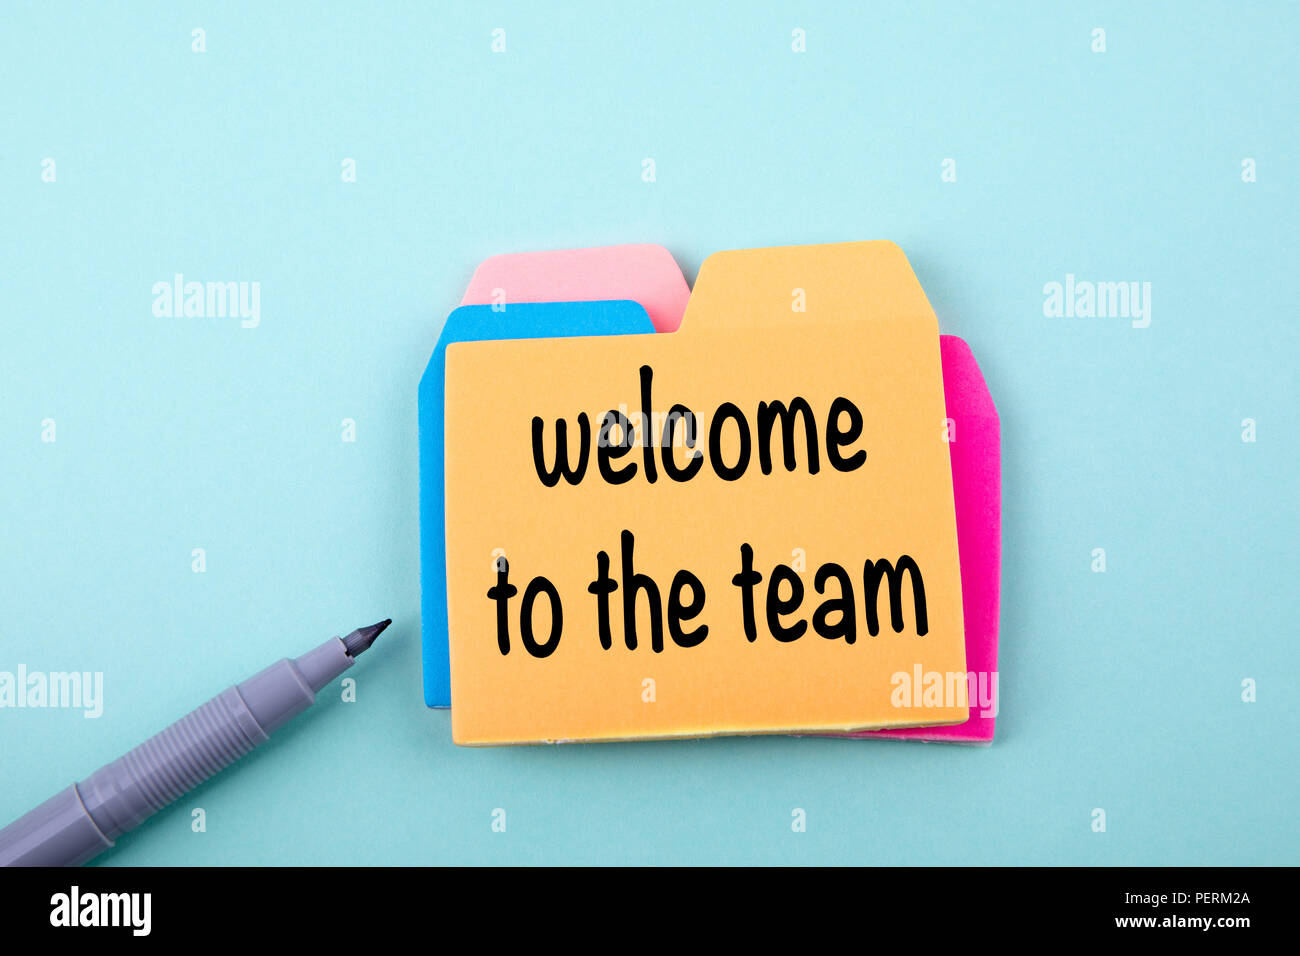 welcome to the team - Stock Image